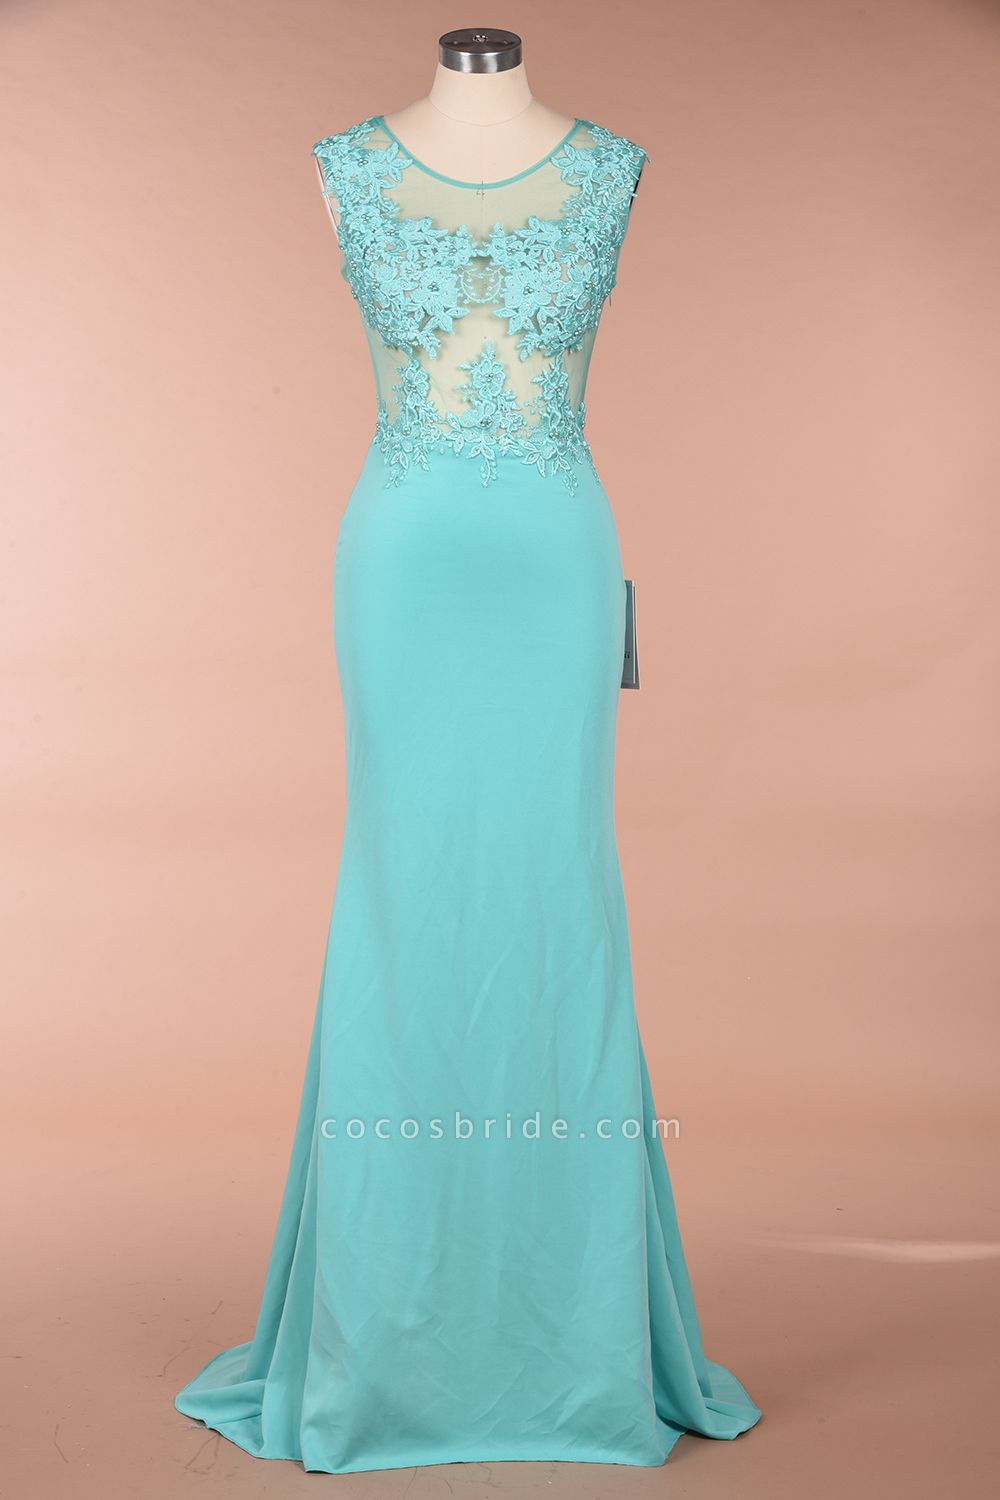 Lace appliques Mint Green Round Neck Cap sleeve Prom Dress